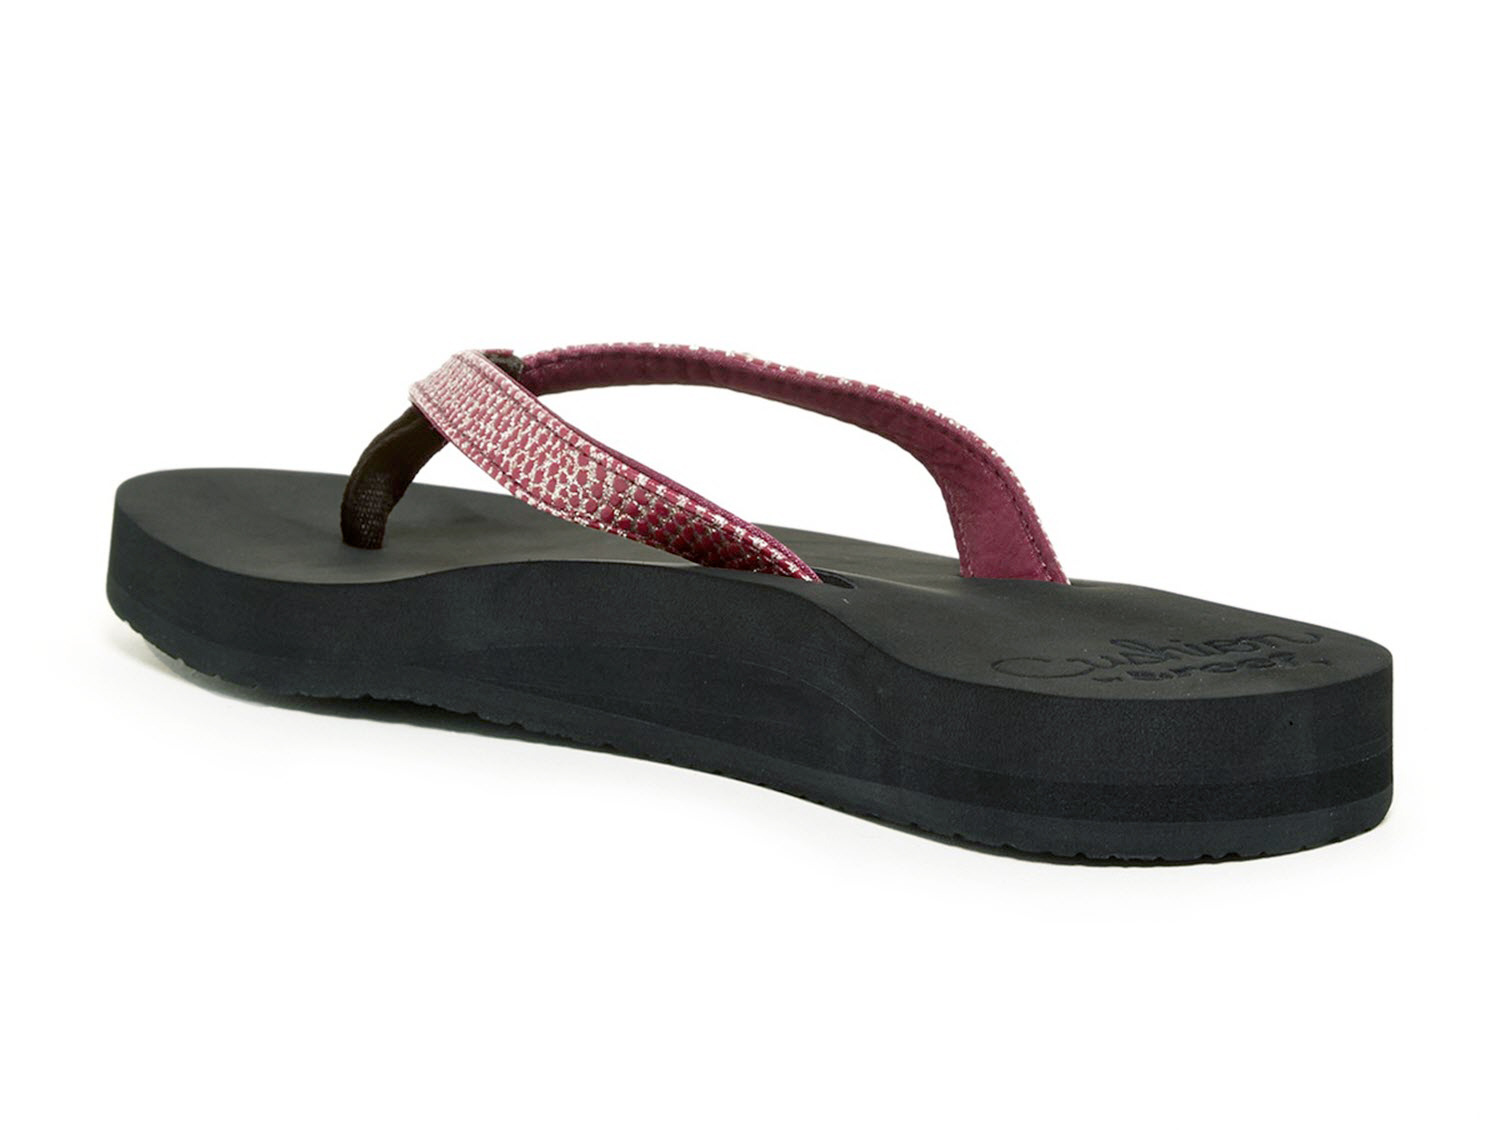 Reef Women's 'Star' Flip Flop